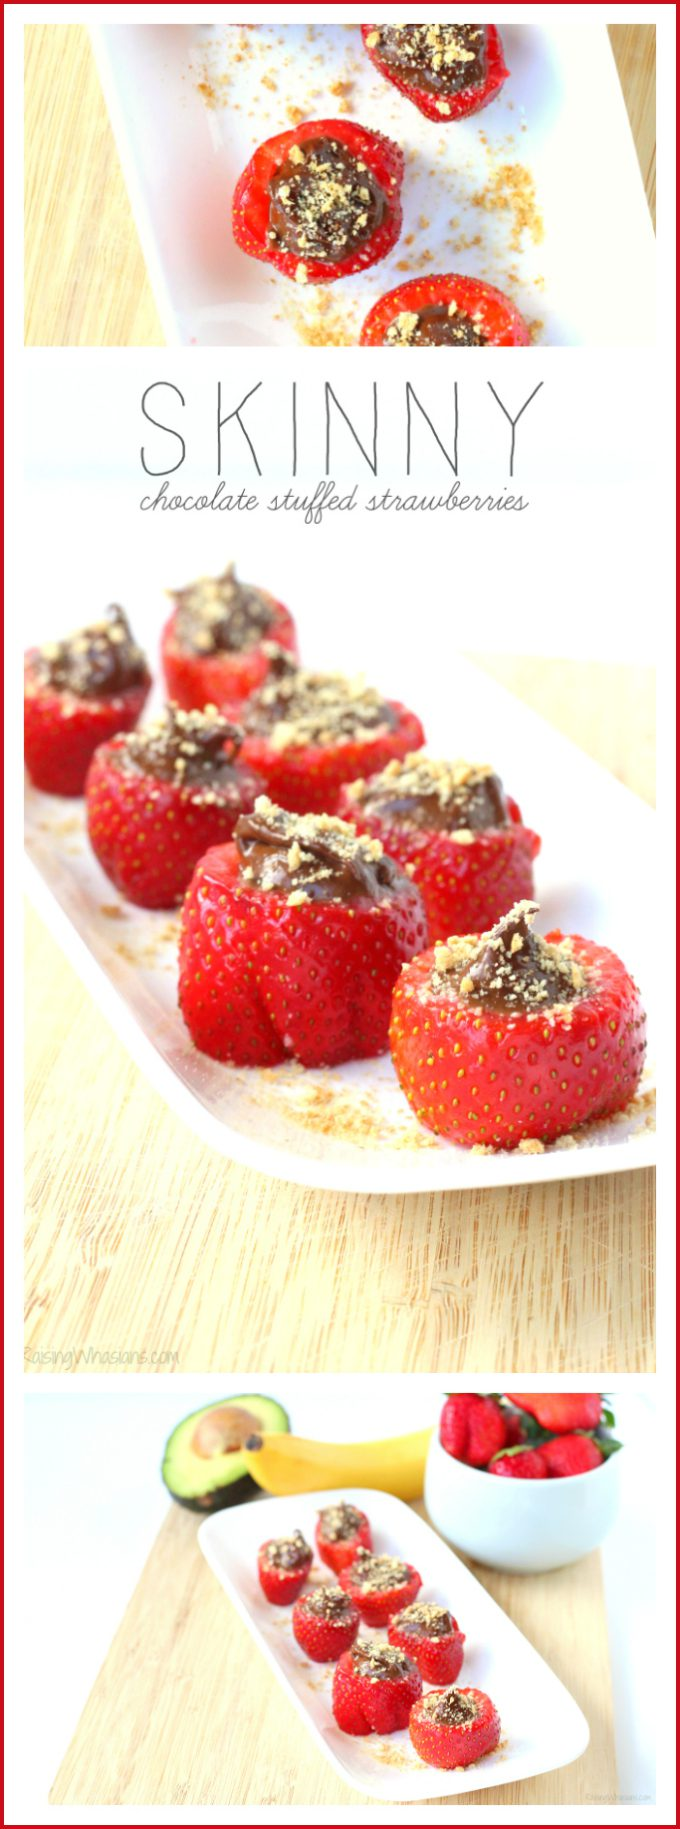 Skinny chocolate stuffed strawberries pinterest